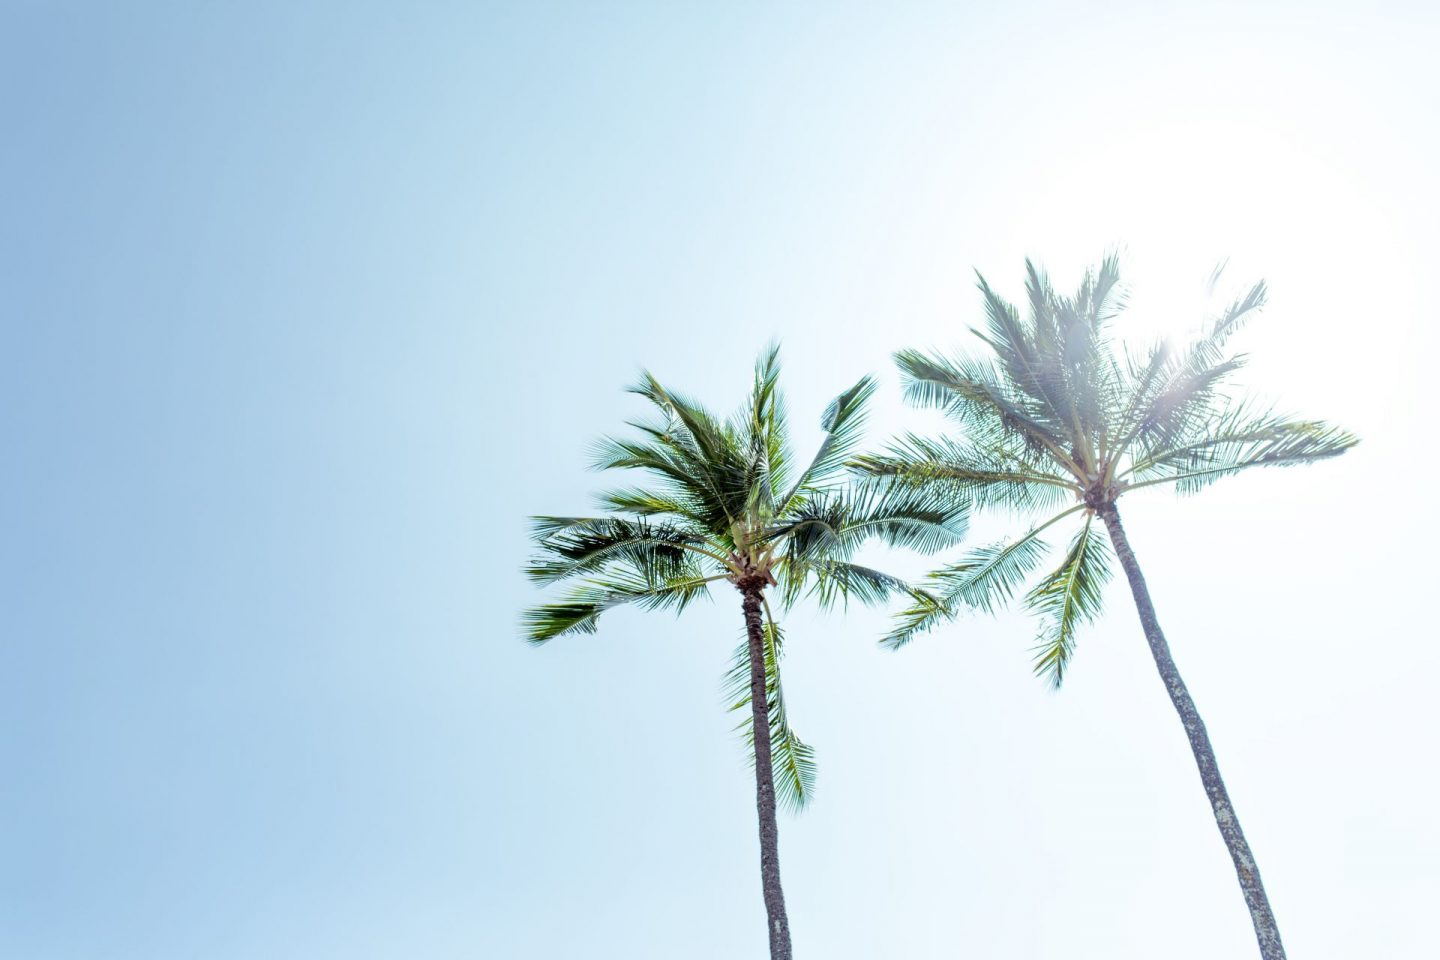 palmtrees, blue sky